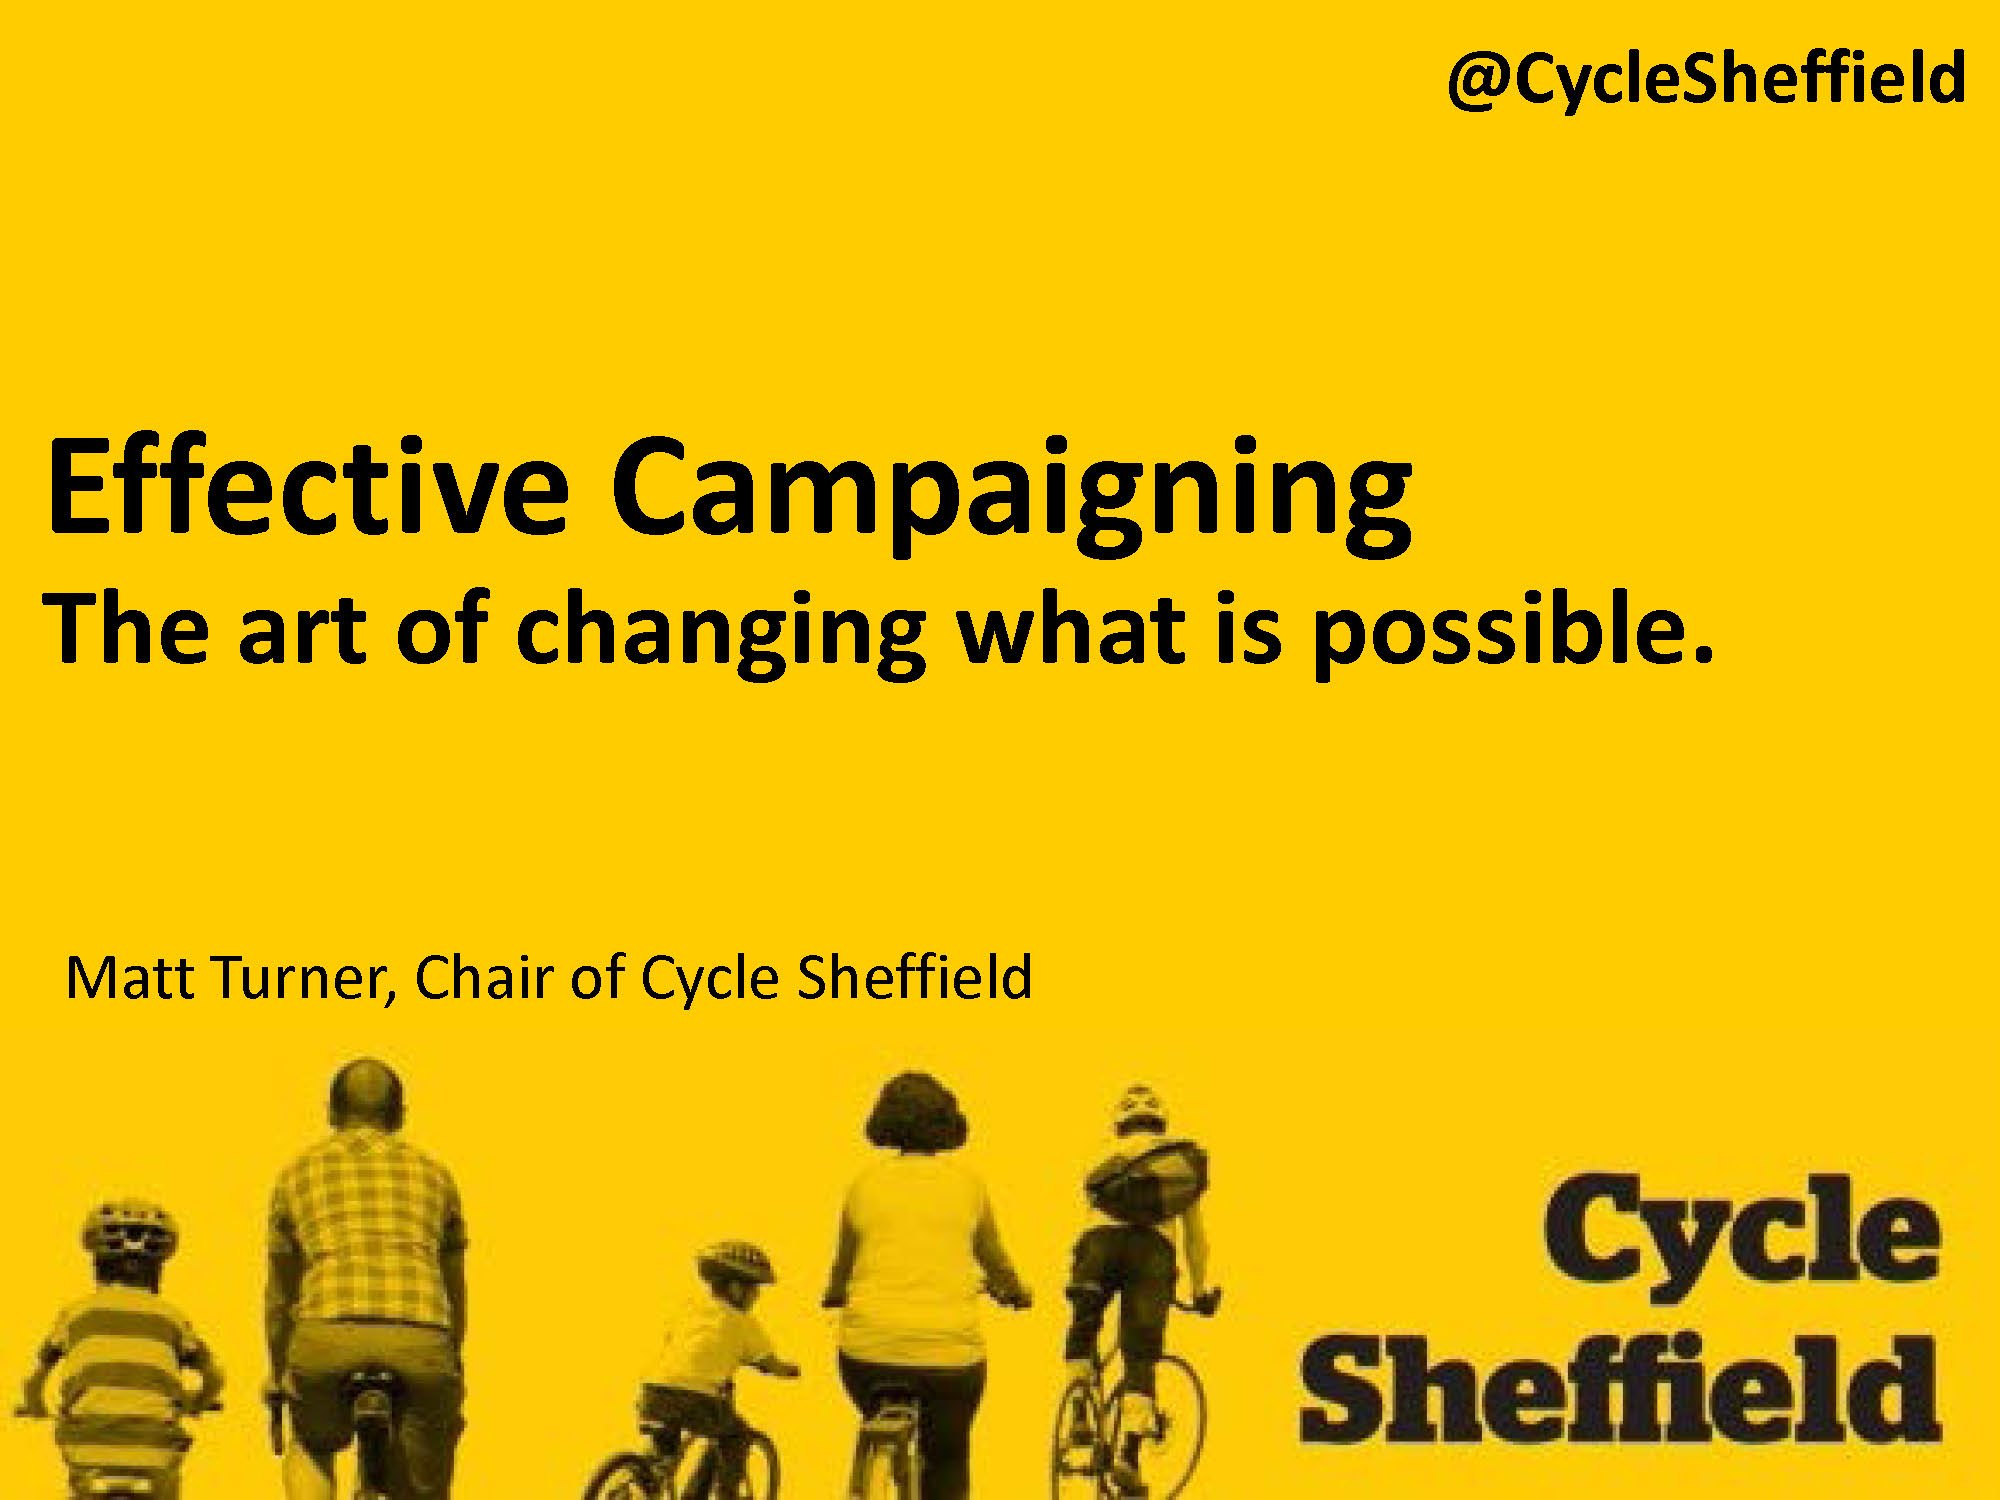 Effective Campaigning - CycleSheffield